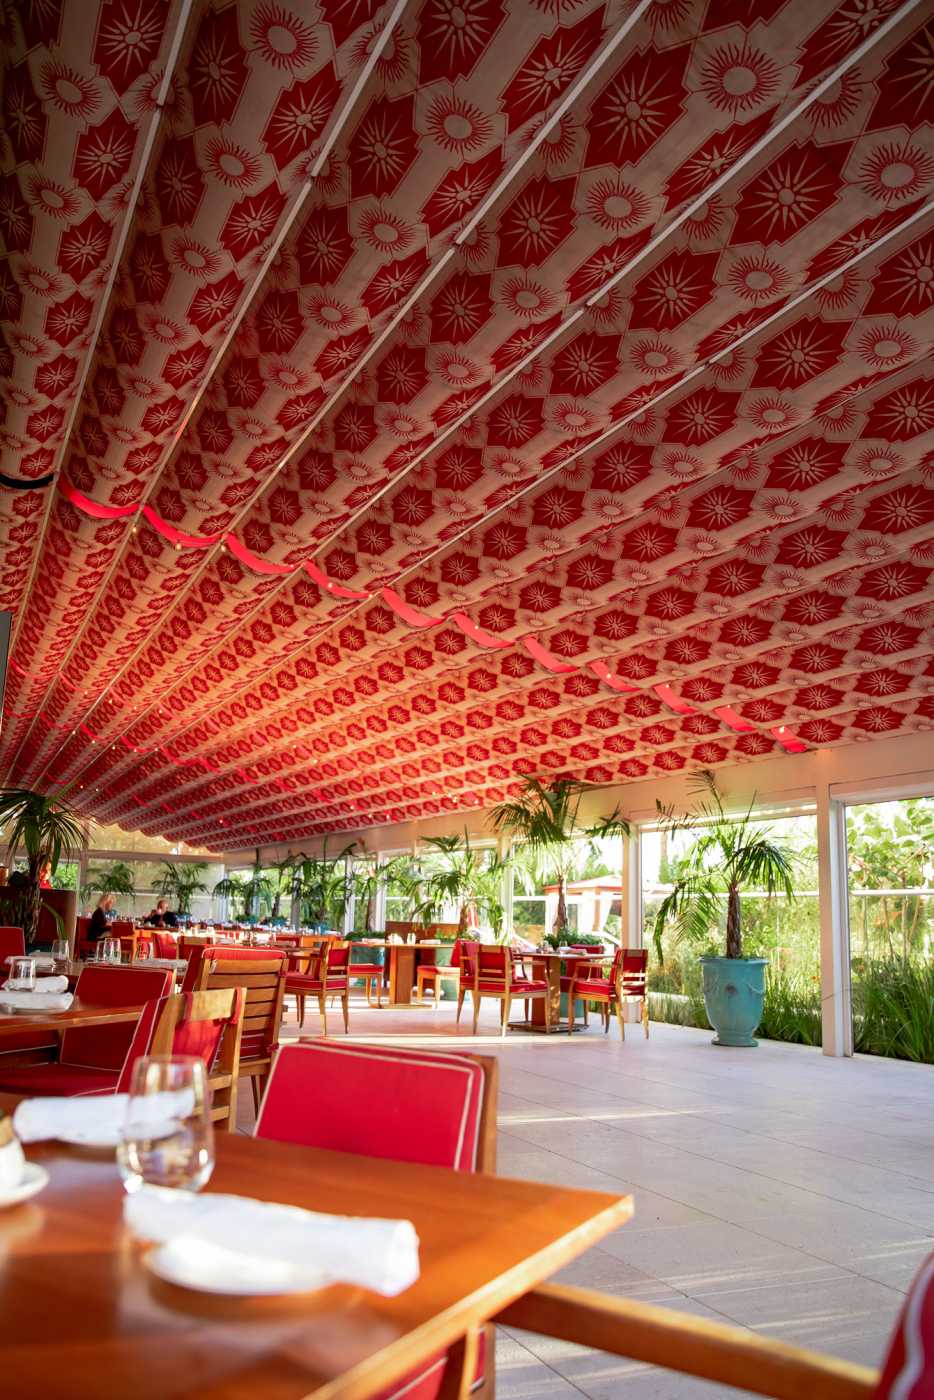 Faena Miami Beach Restaurant